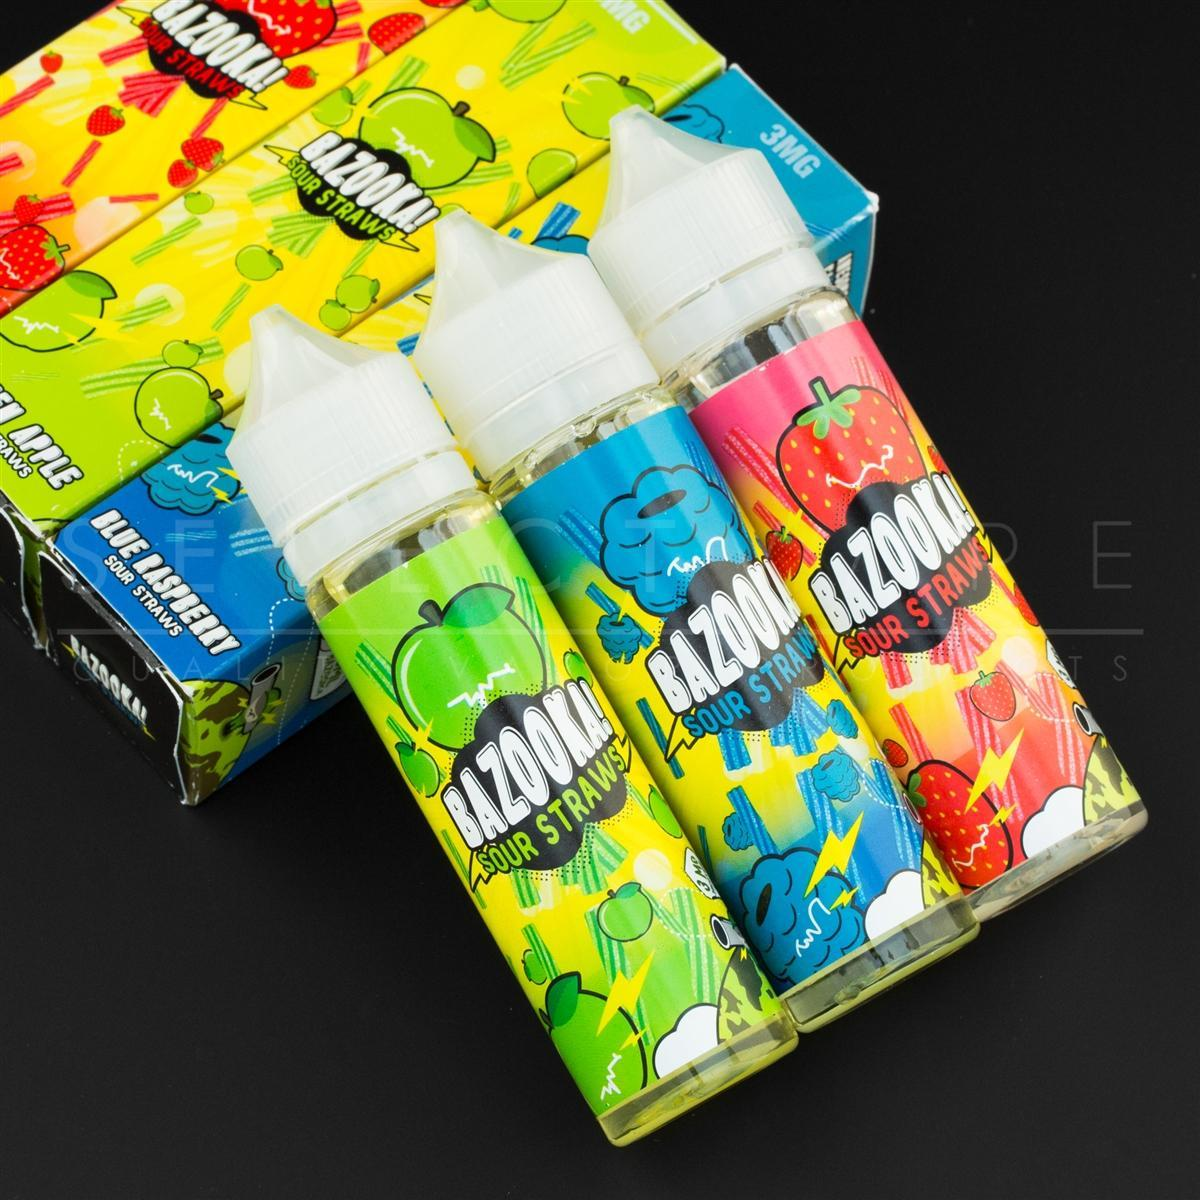 Bazooka - Sour Strar Variety 3 Pack 60ml Bottles